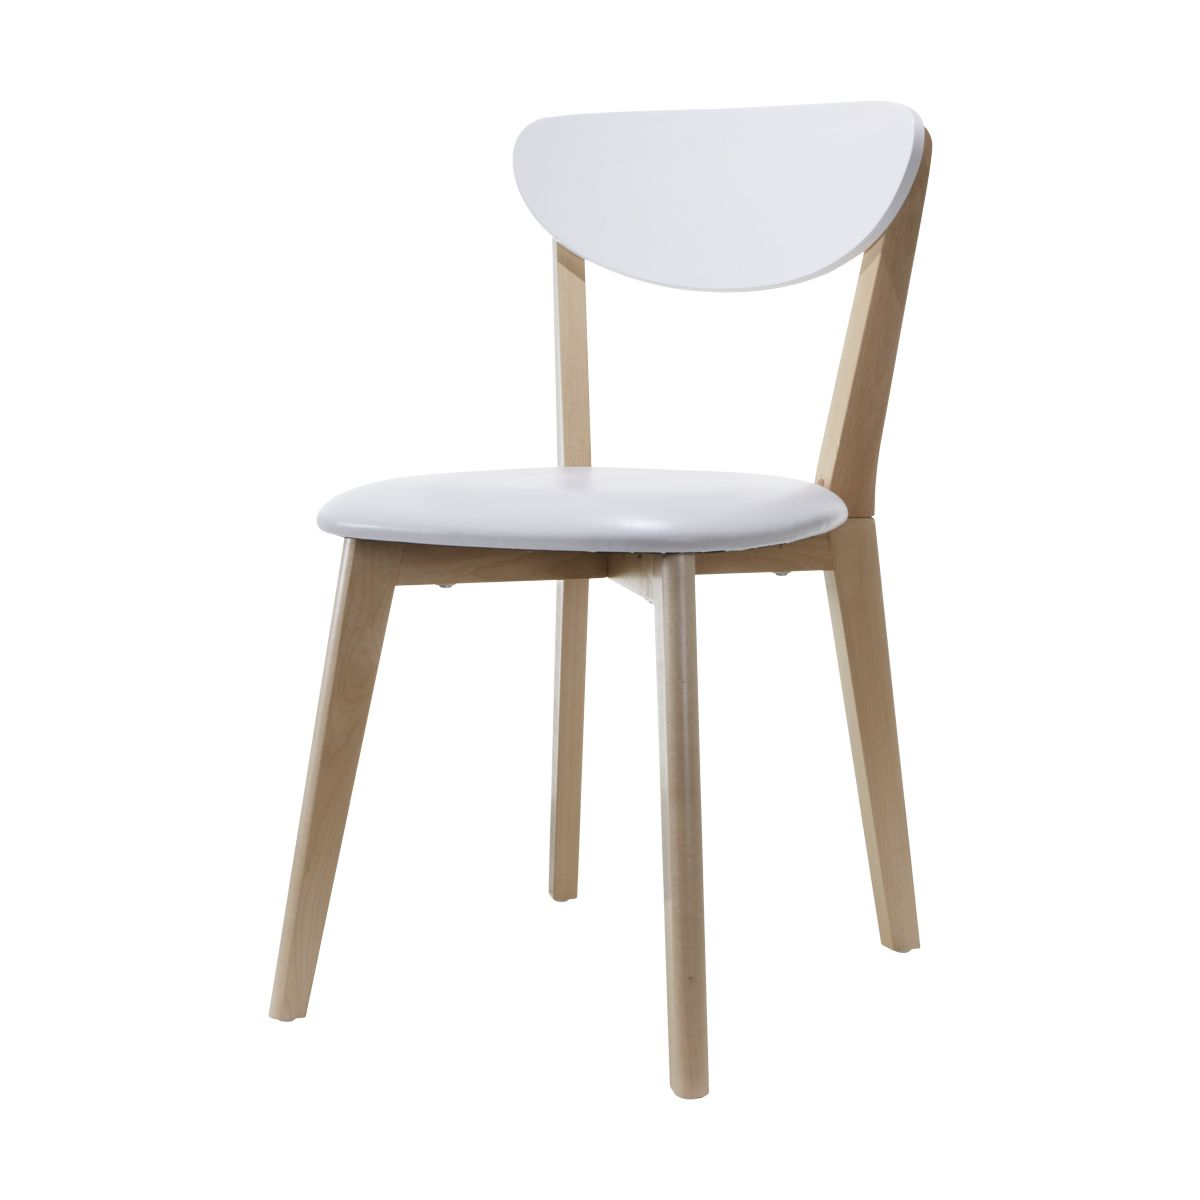 Bianca Dining Chair | Kmart  sc 1 st  Pinterest & Bianca Dining Chair | Kmart | House ideas | Pinterest | Dining ...